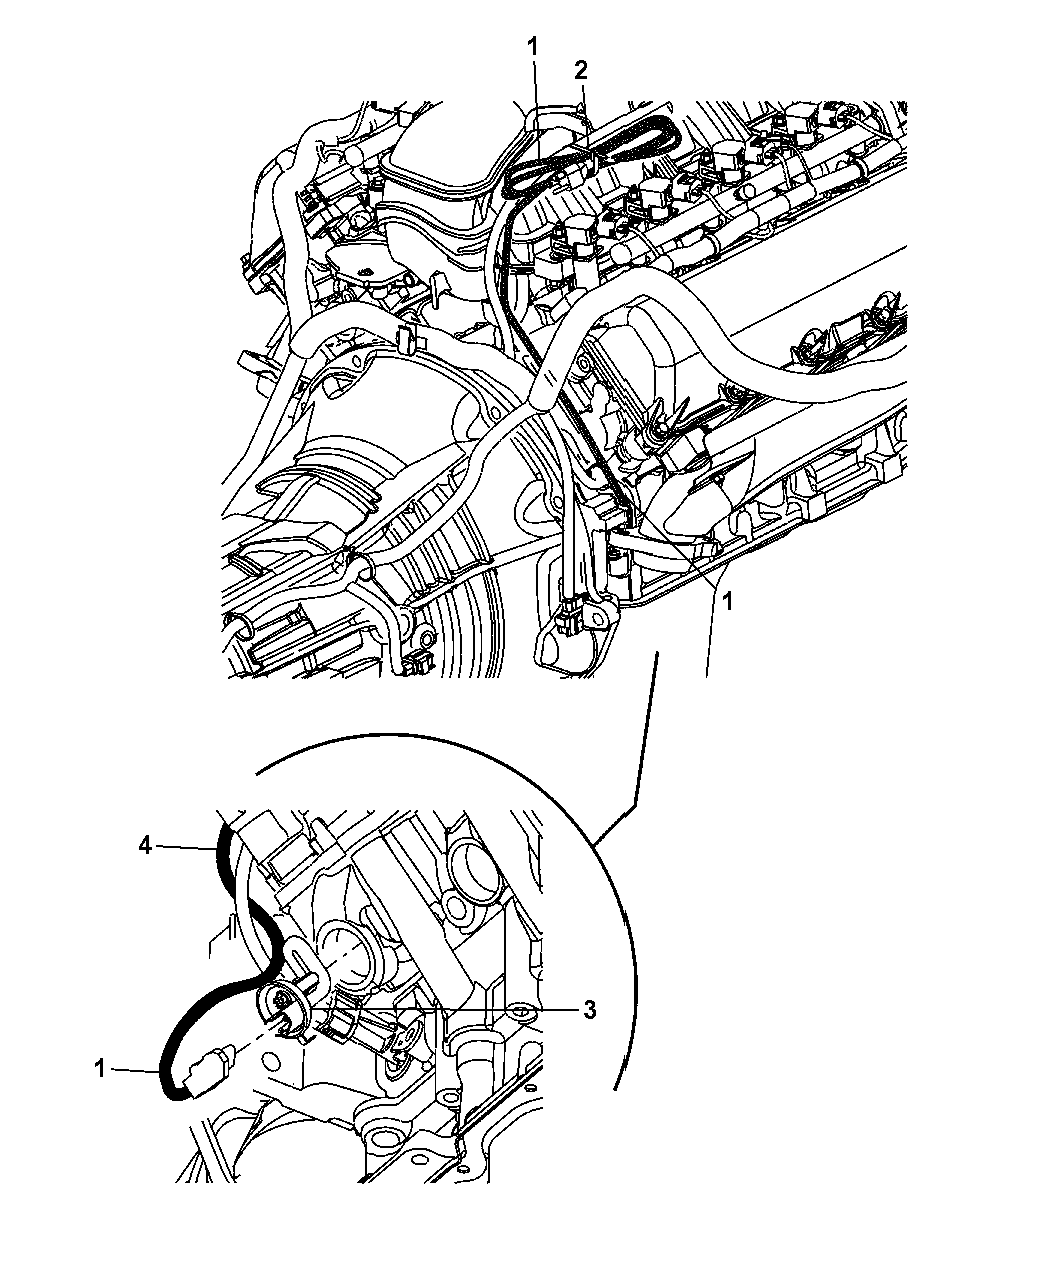 Bestseller: 2012 Jeep Liberty Engine Diagram